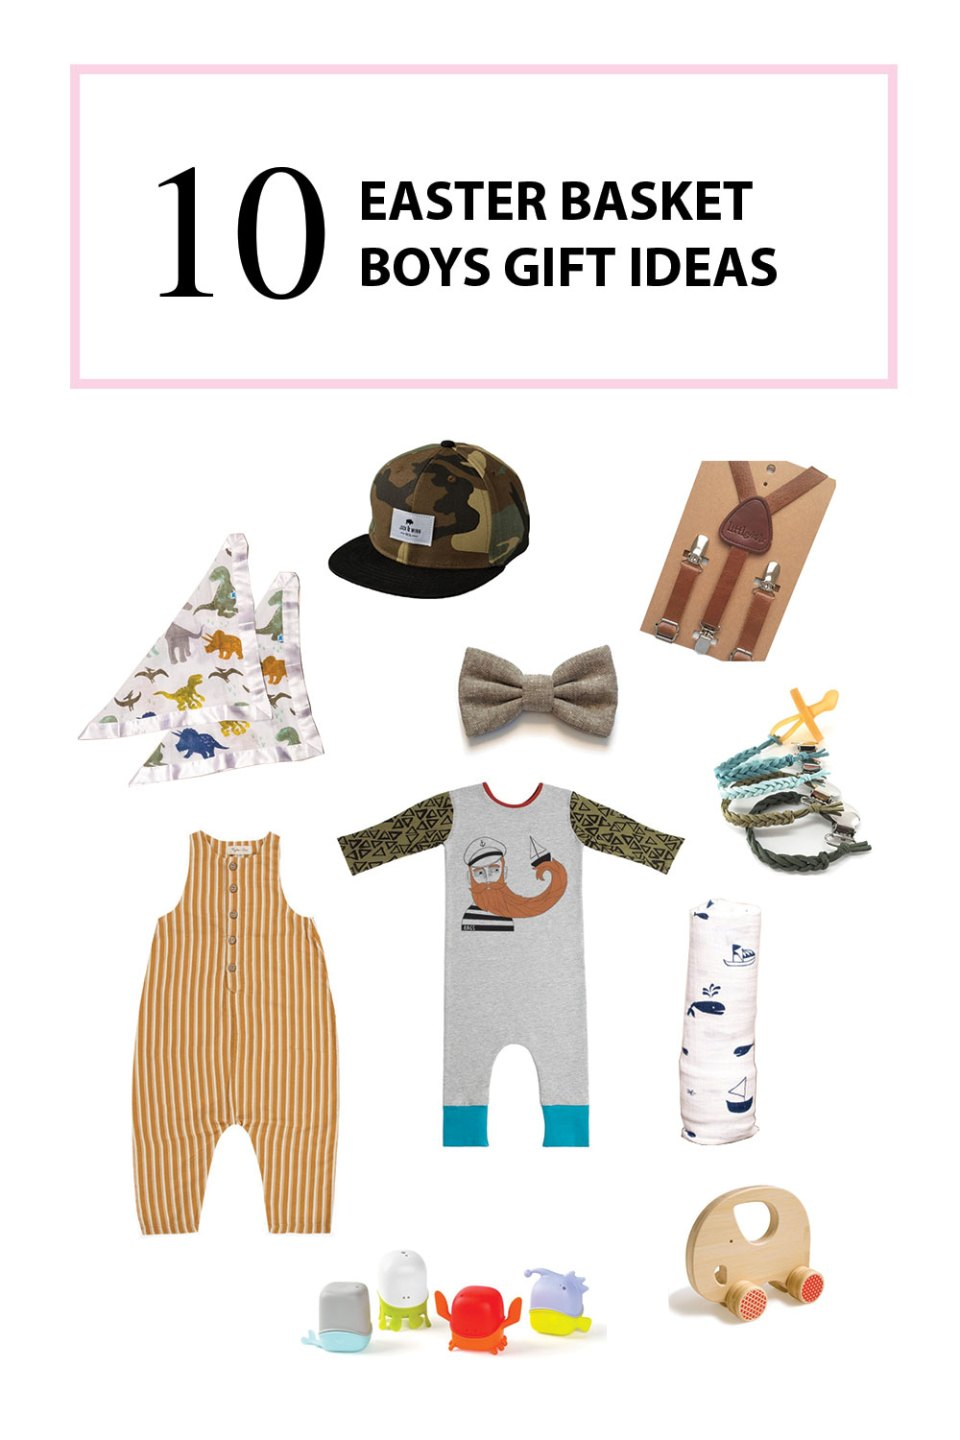 Boys Easter Basket Gift Ideas | The Baby Cubby